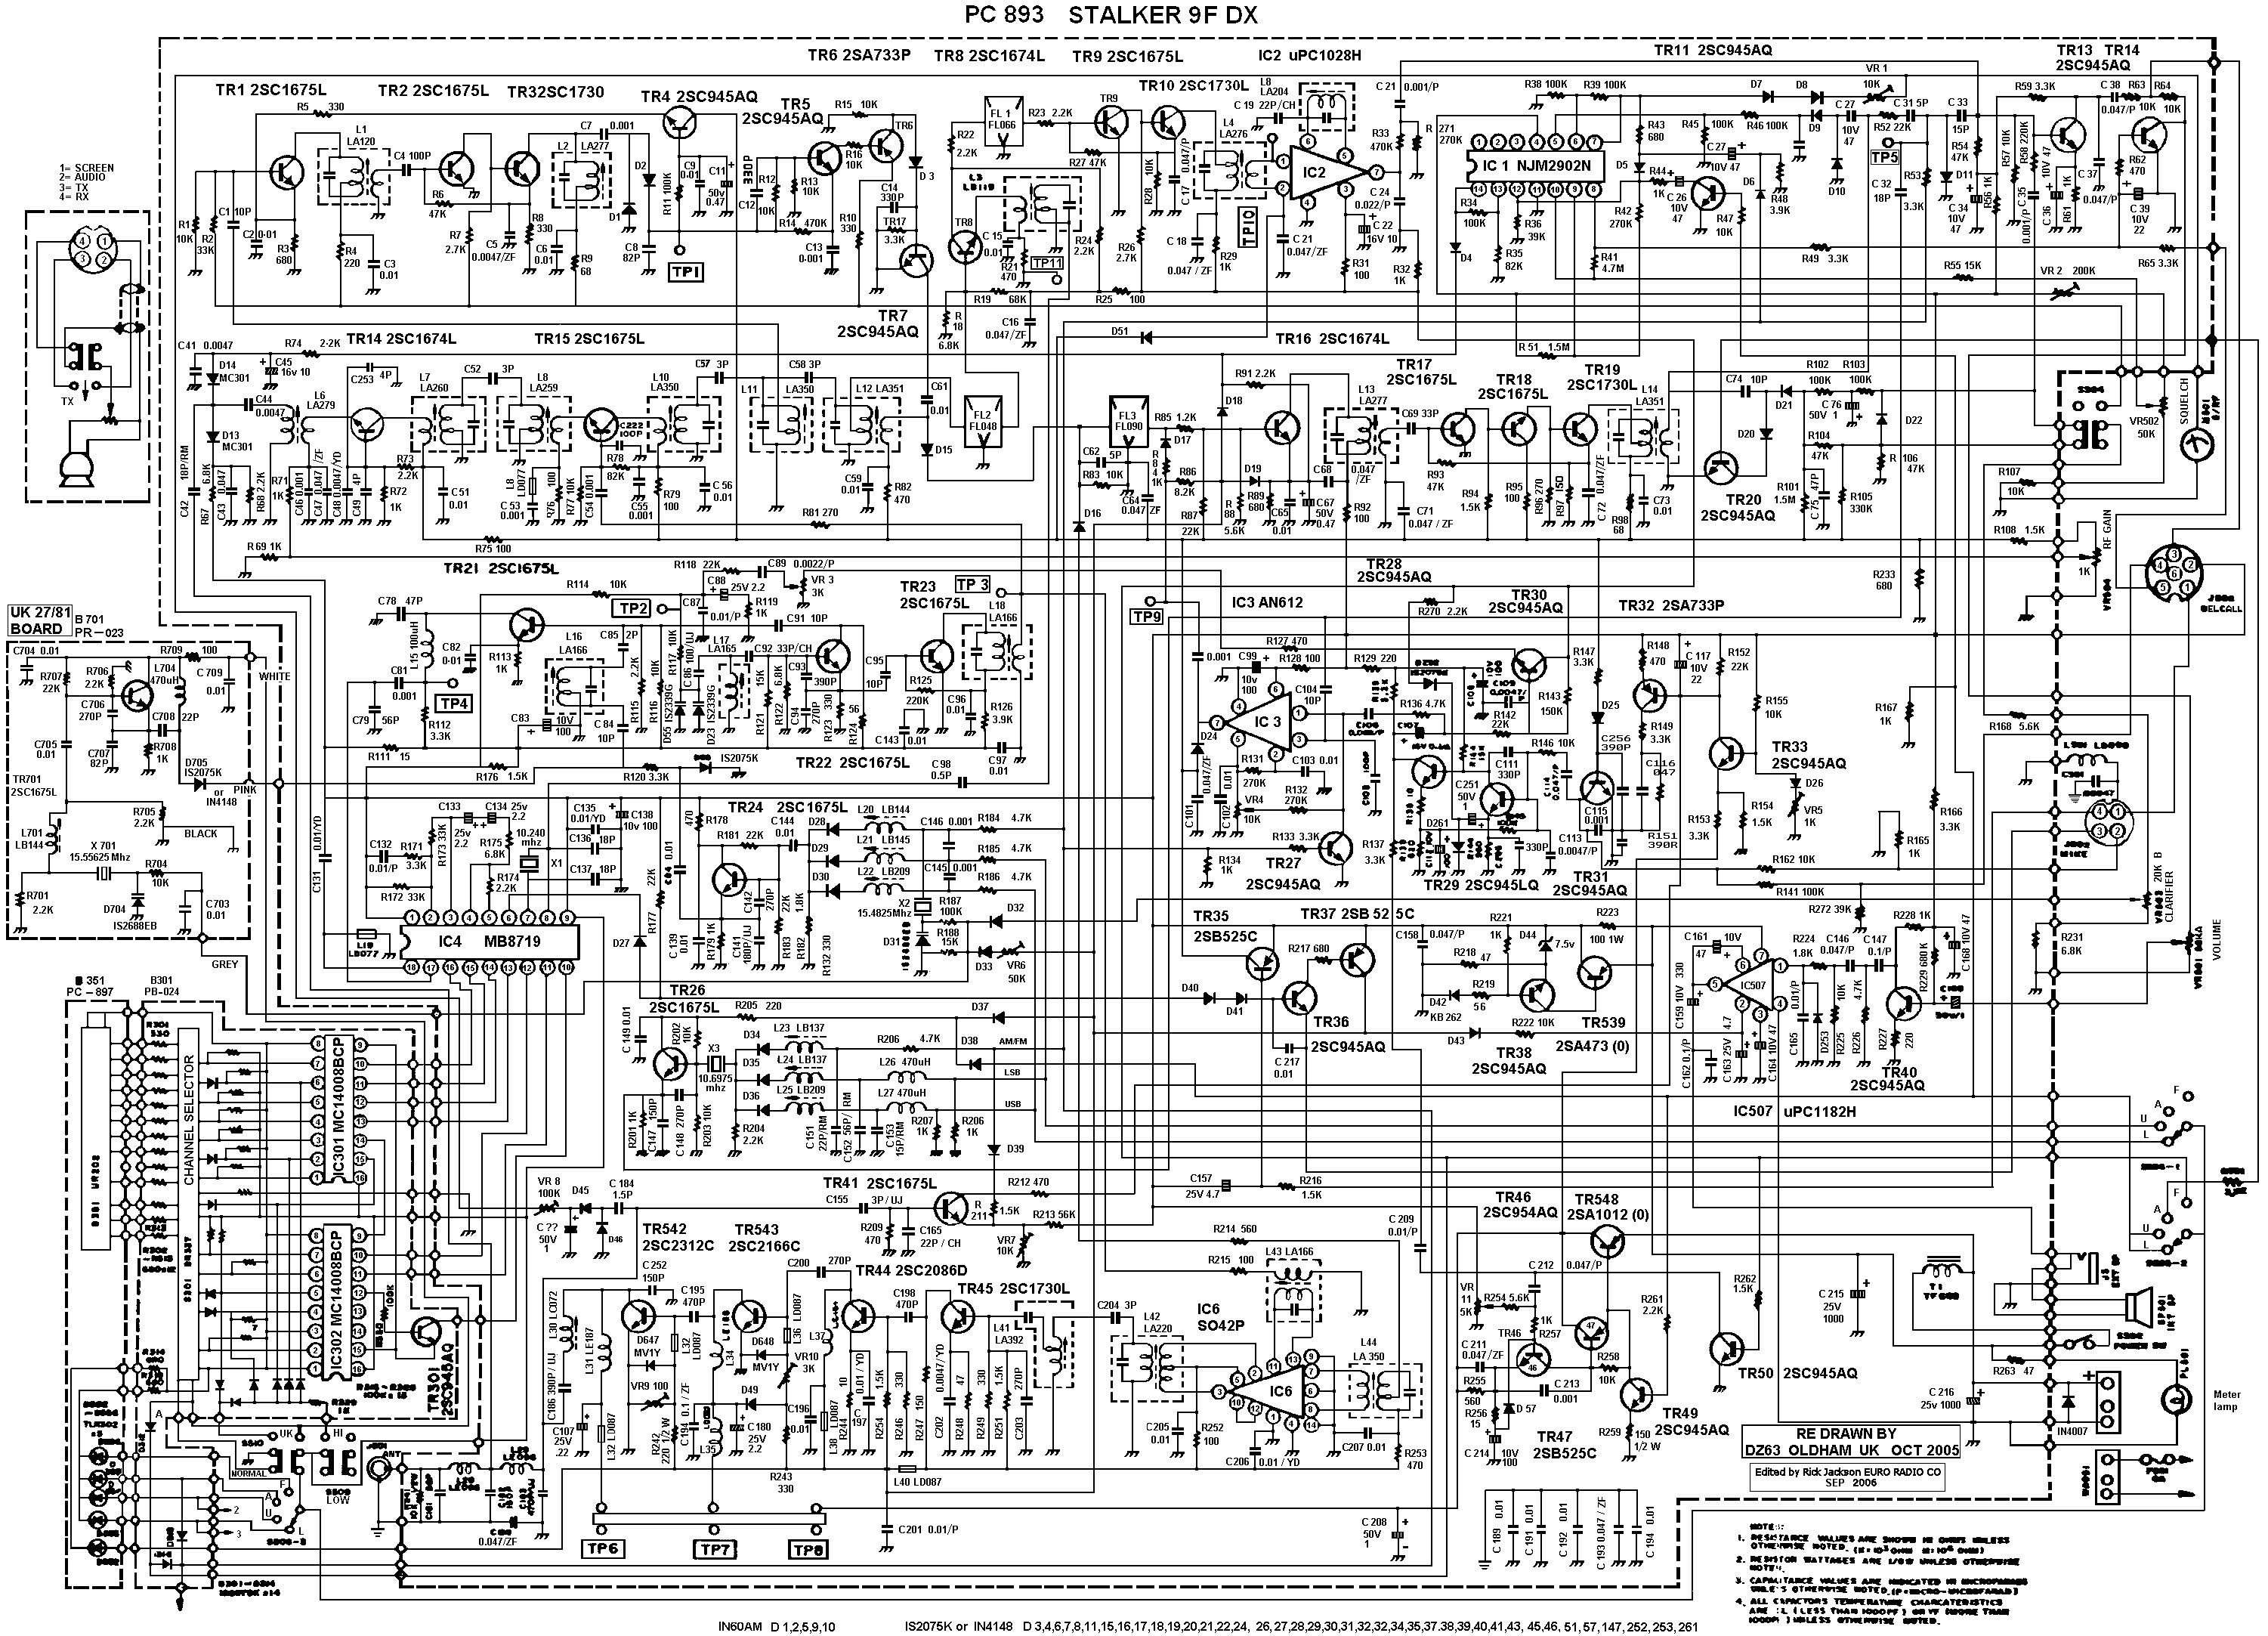 381f91856c8e3d5a8624ba977cca4625 image result for circuit diagram client_iot_平面 pinterest circuit diagram pdf at bayanpartner.co